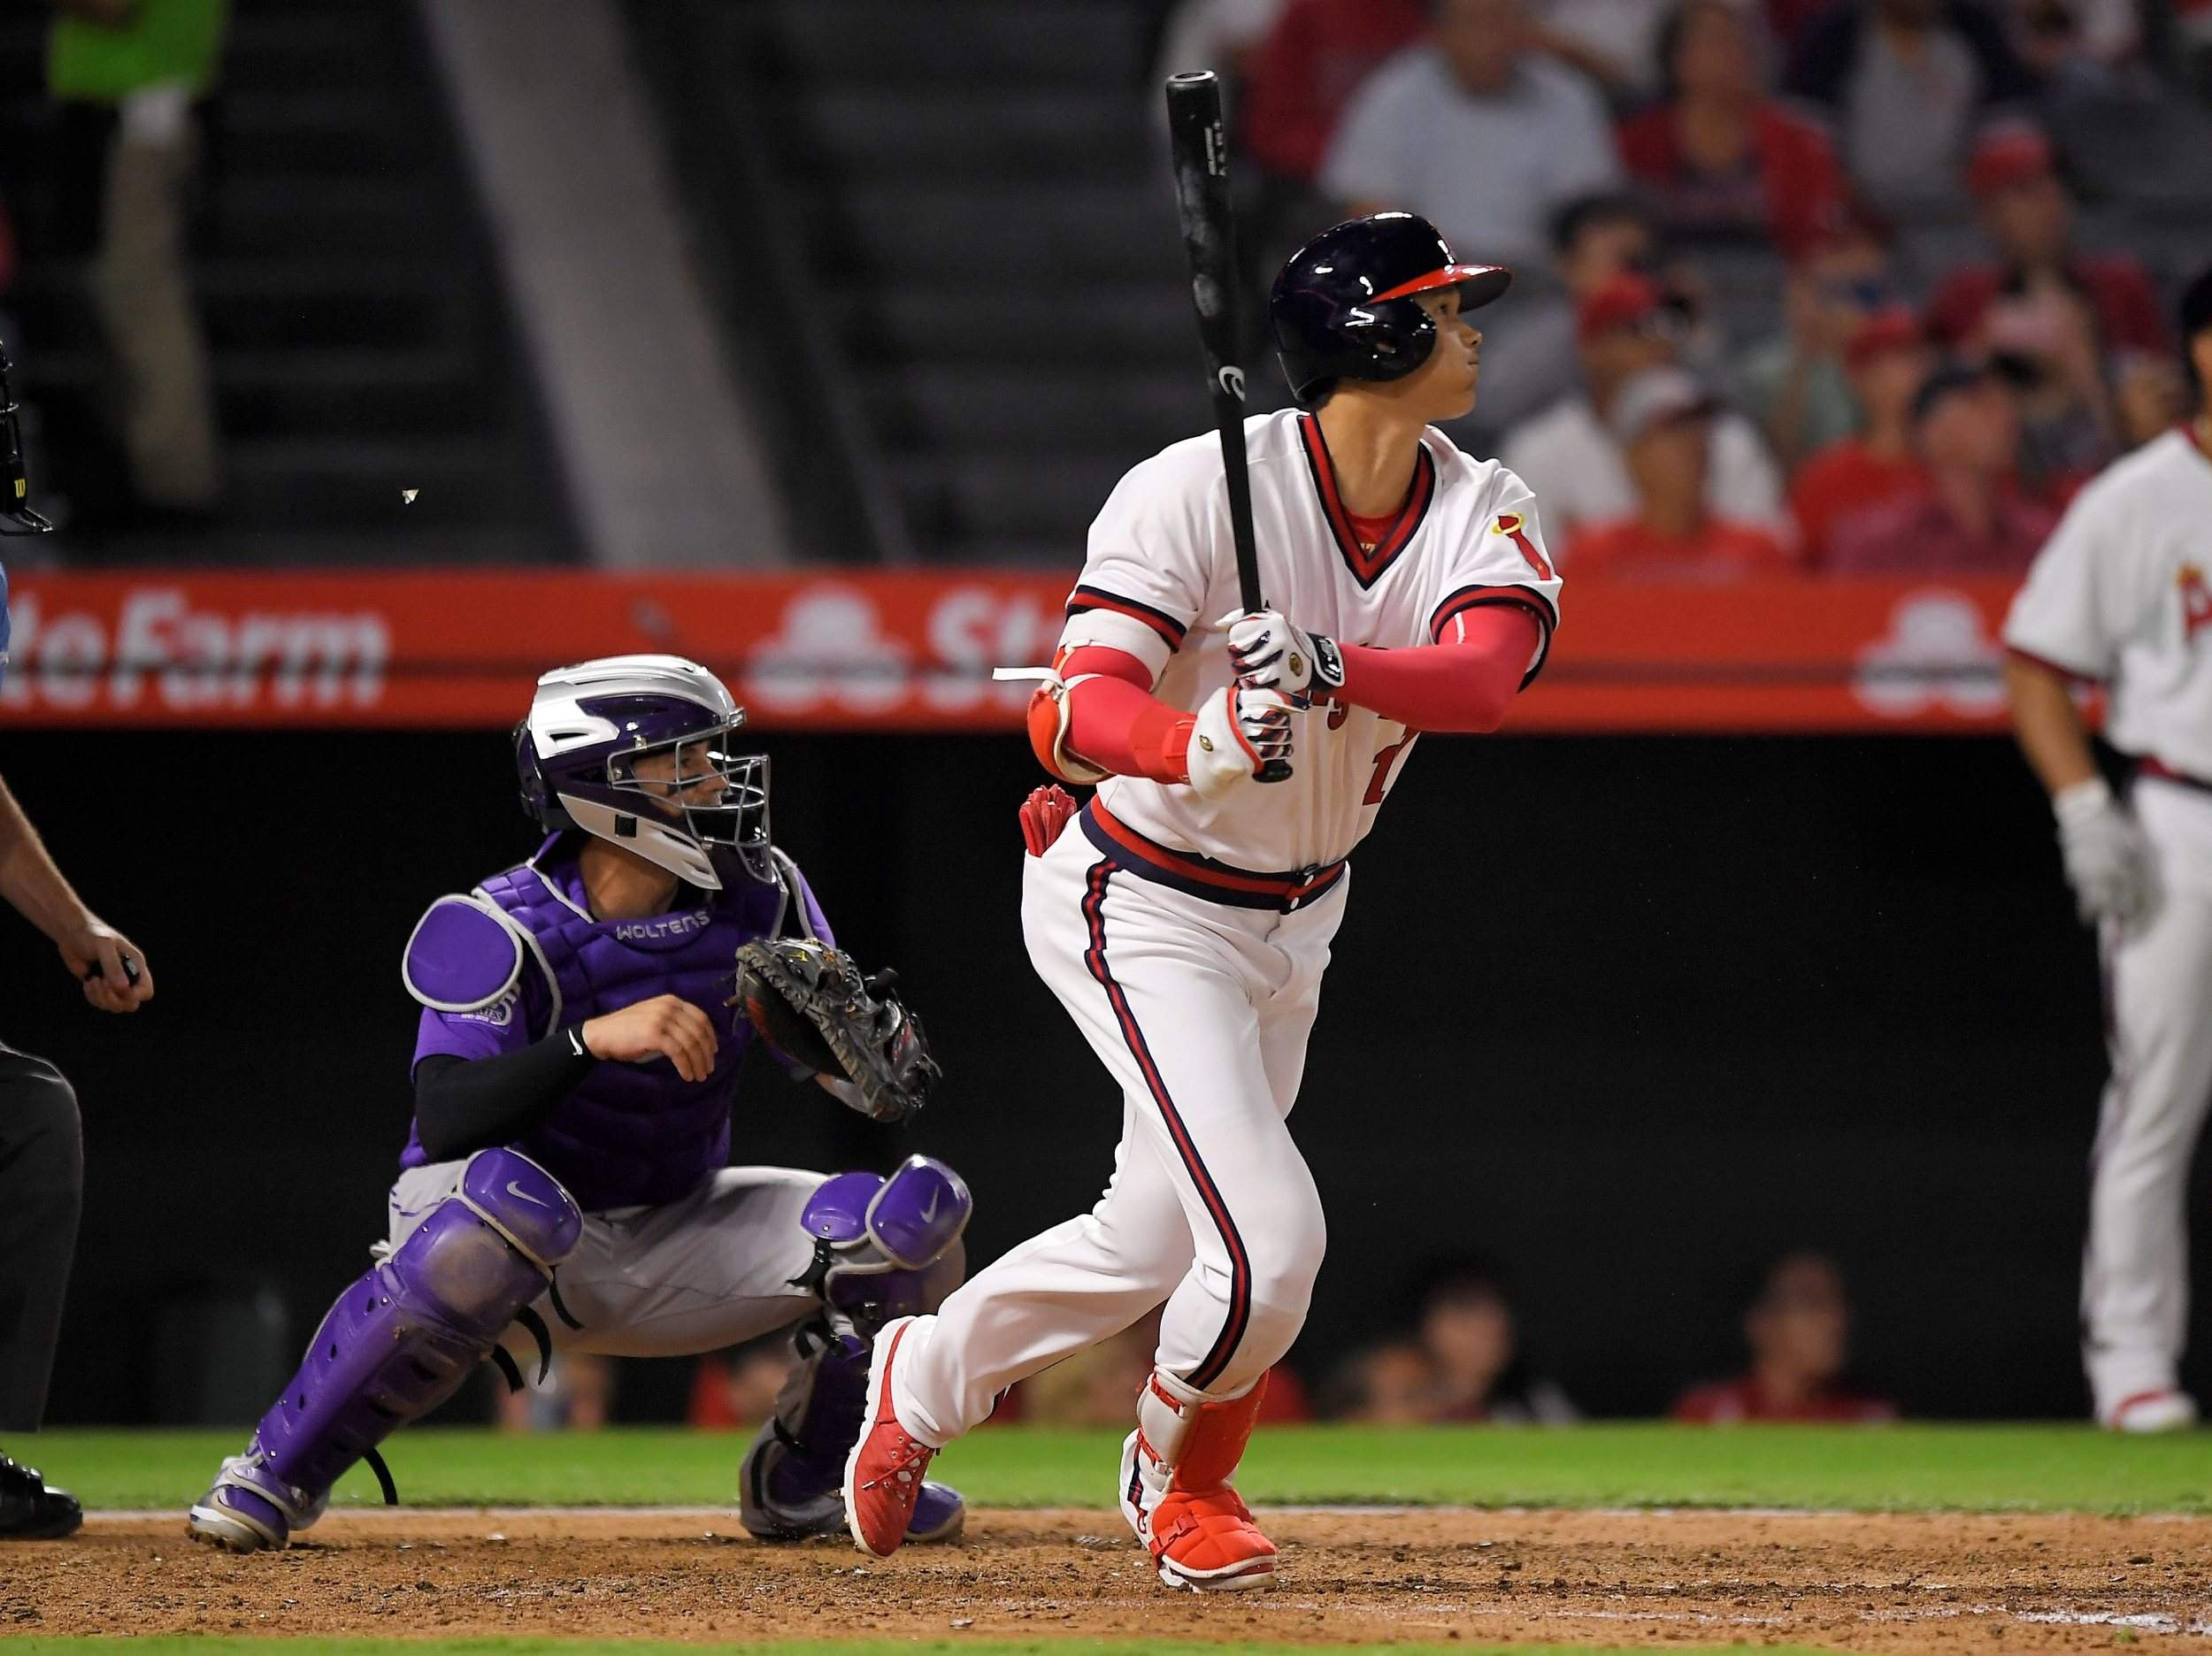 100% authentic 8f724 6f547 Mike Trout, Shohei Ohtani homer; Angels rally past Rockies